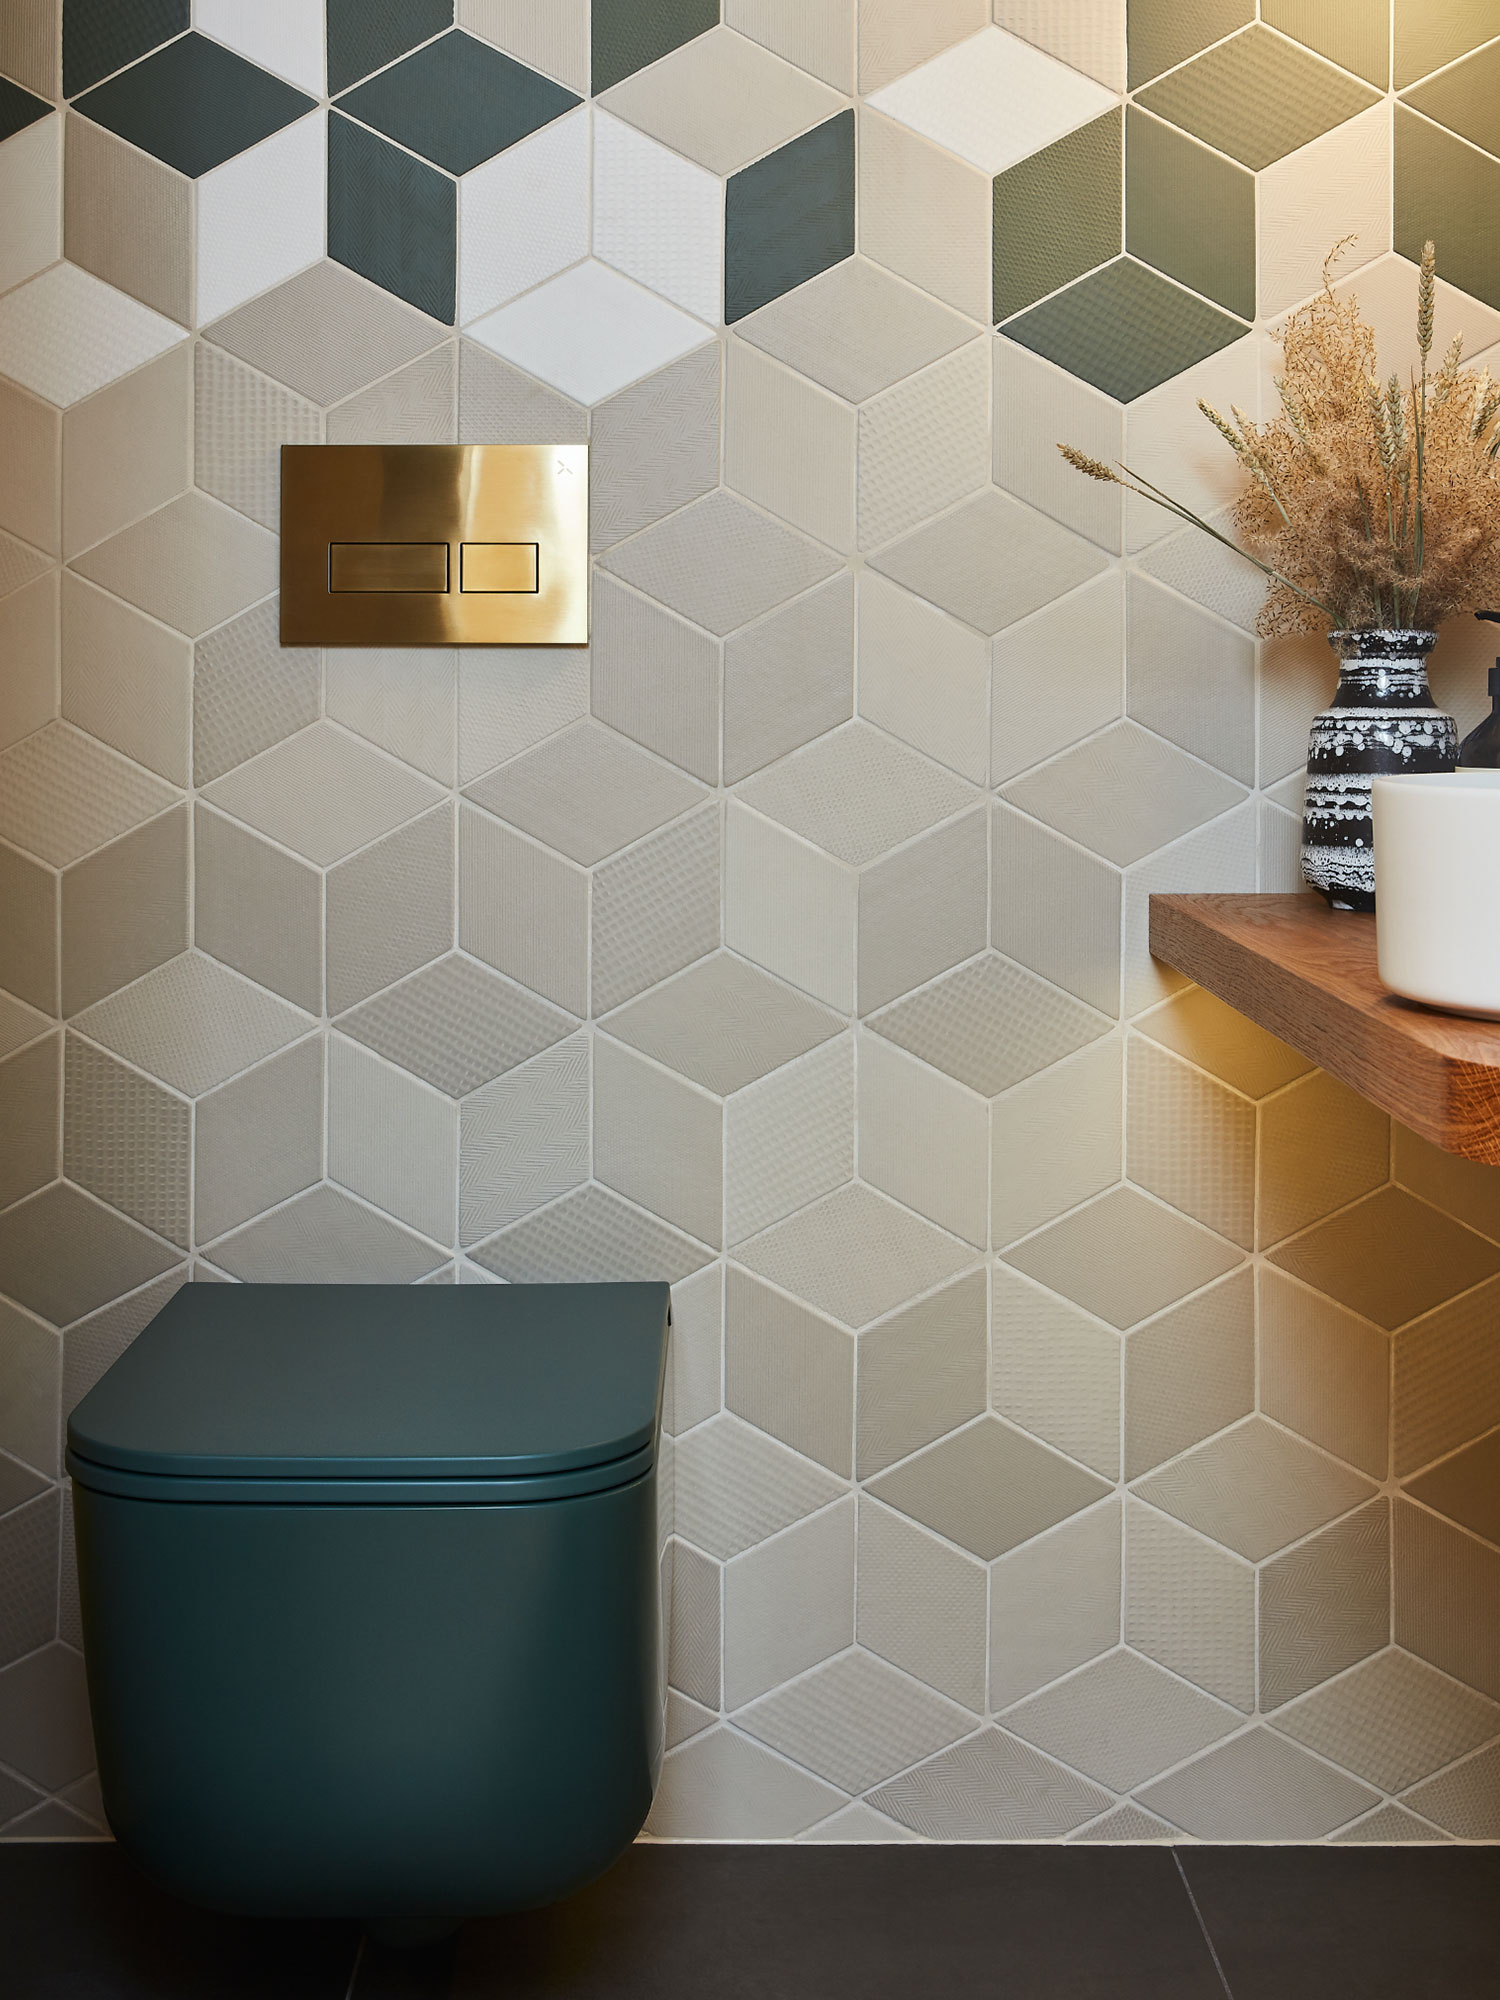 West One Bathrooms Inspiration Turning a Spare Room into a Large Bathroom image3b